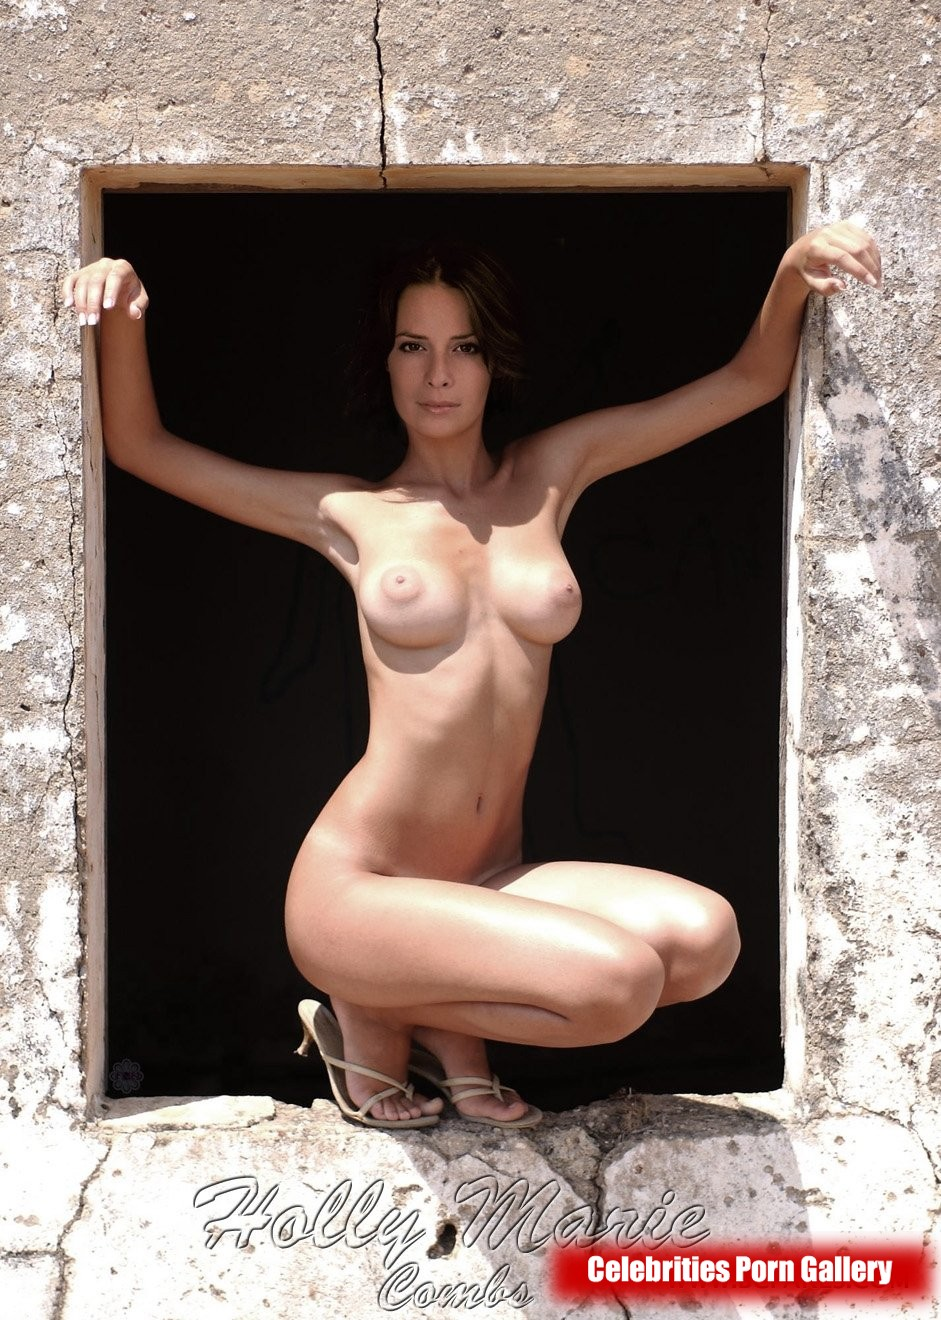 Holly Marie Combs Nudes Galleries